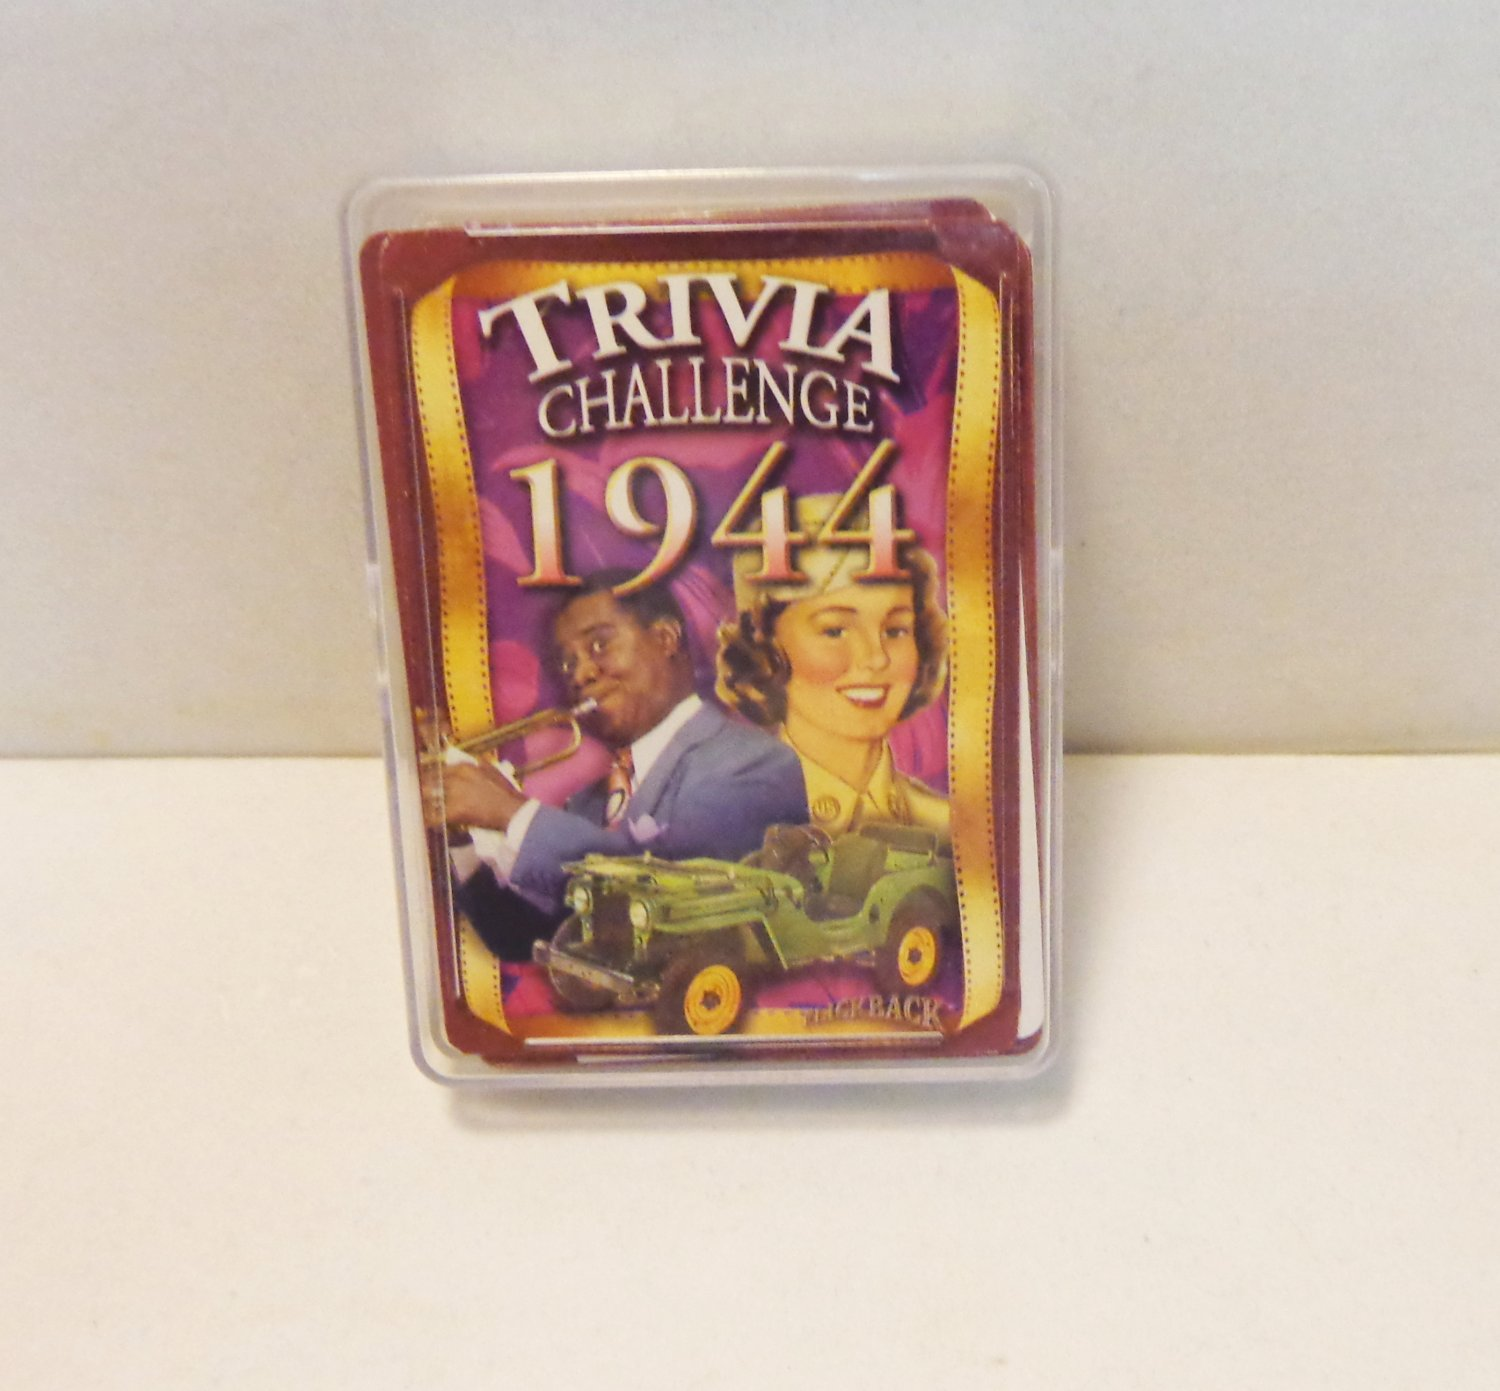 1944 Trivia deck playing cards 54 card deck sports history entertainment vintage hc3387